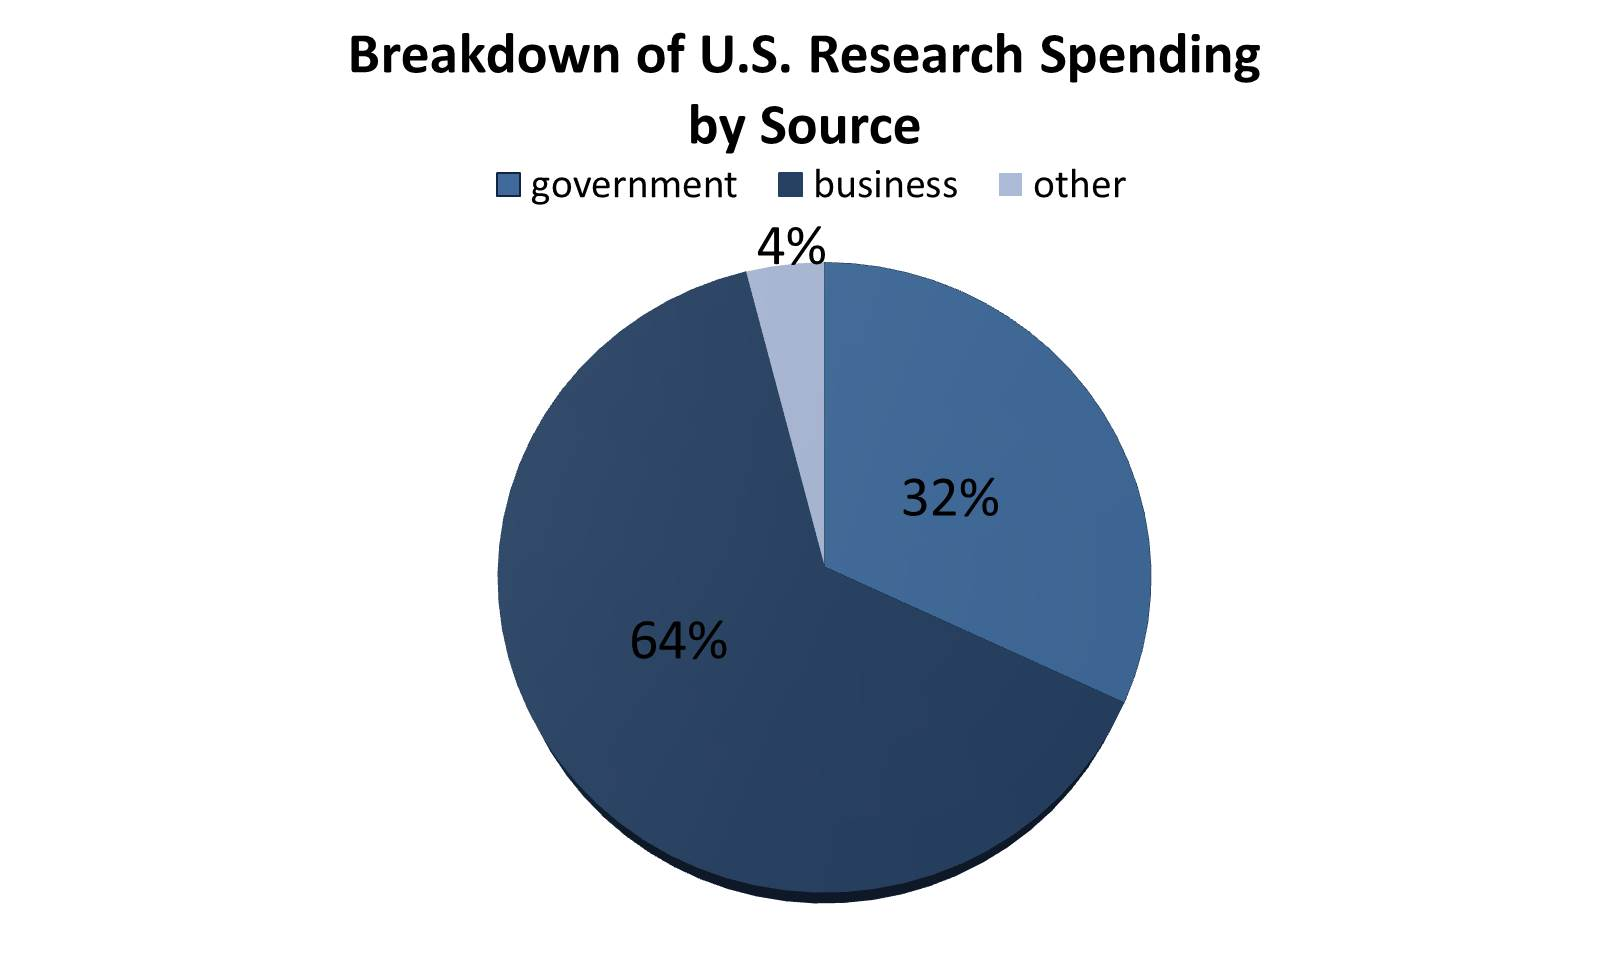 essay on Should Government Spend More Money on AIDS/HIV Research Than ...